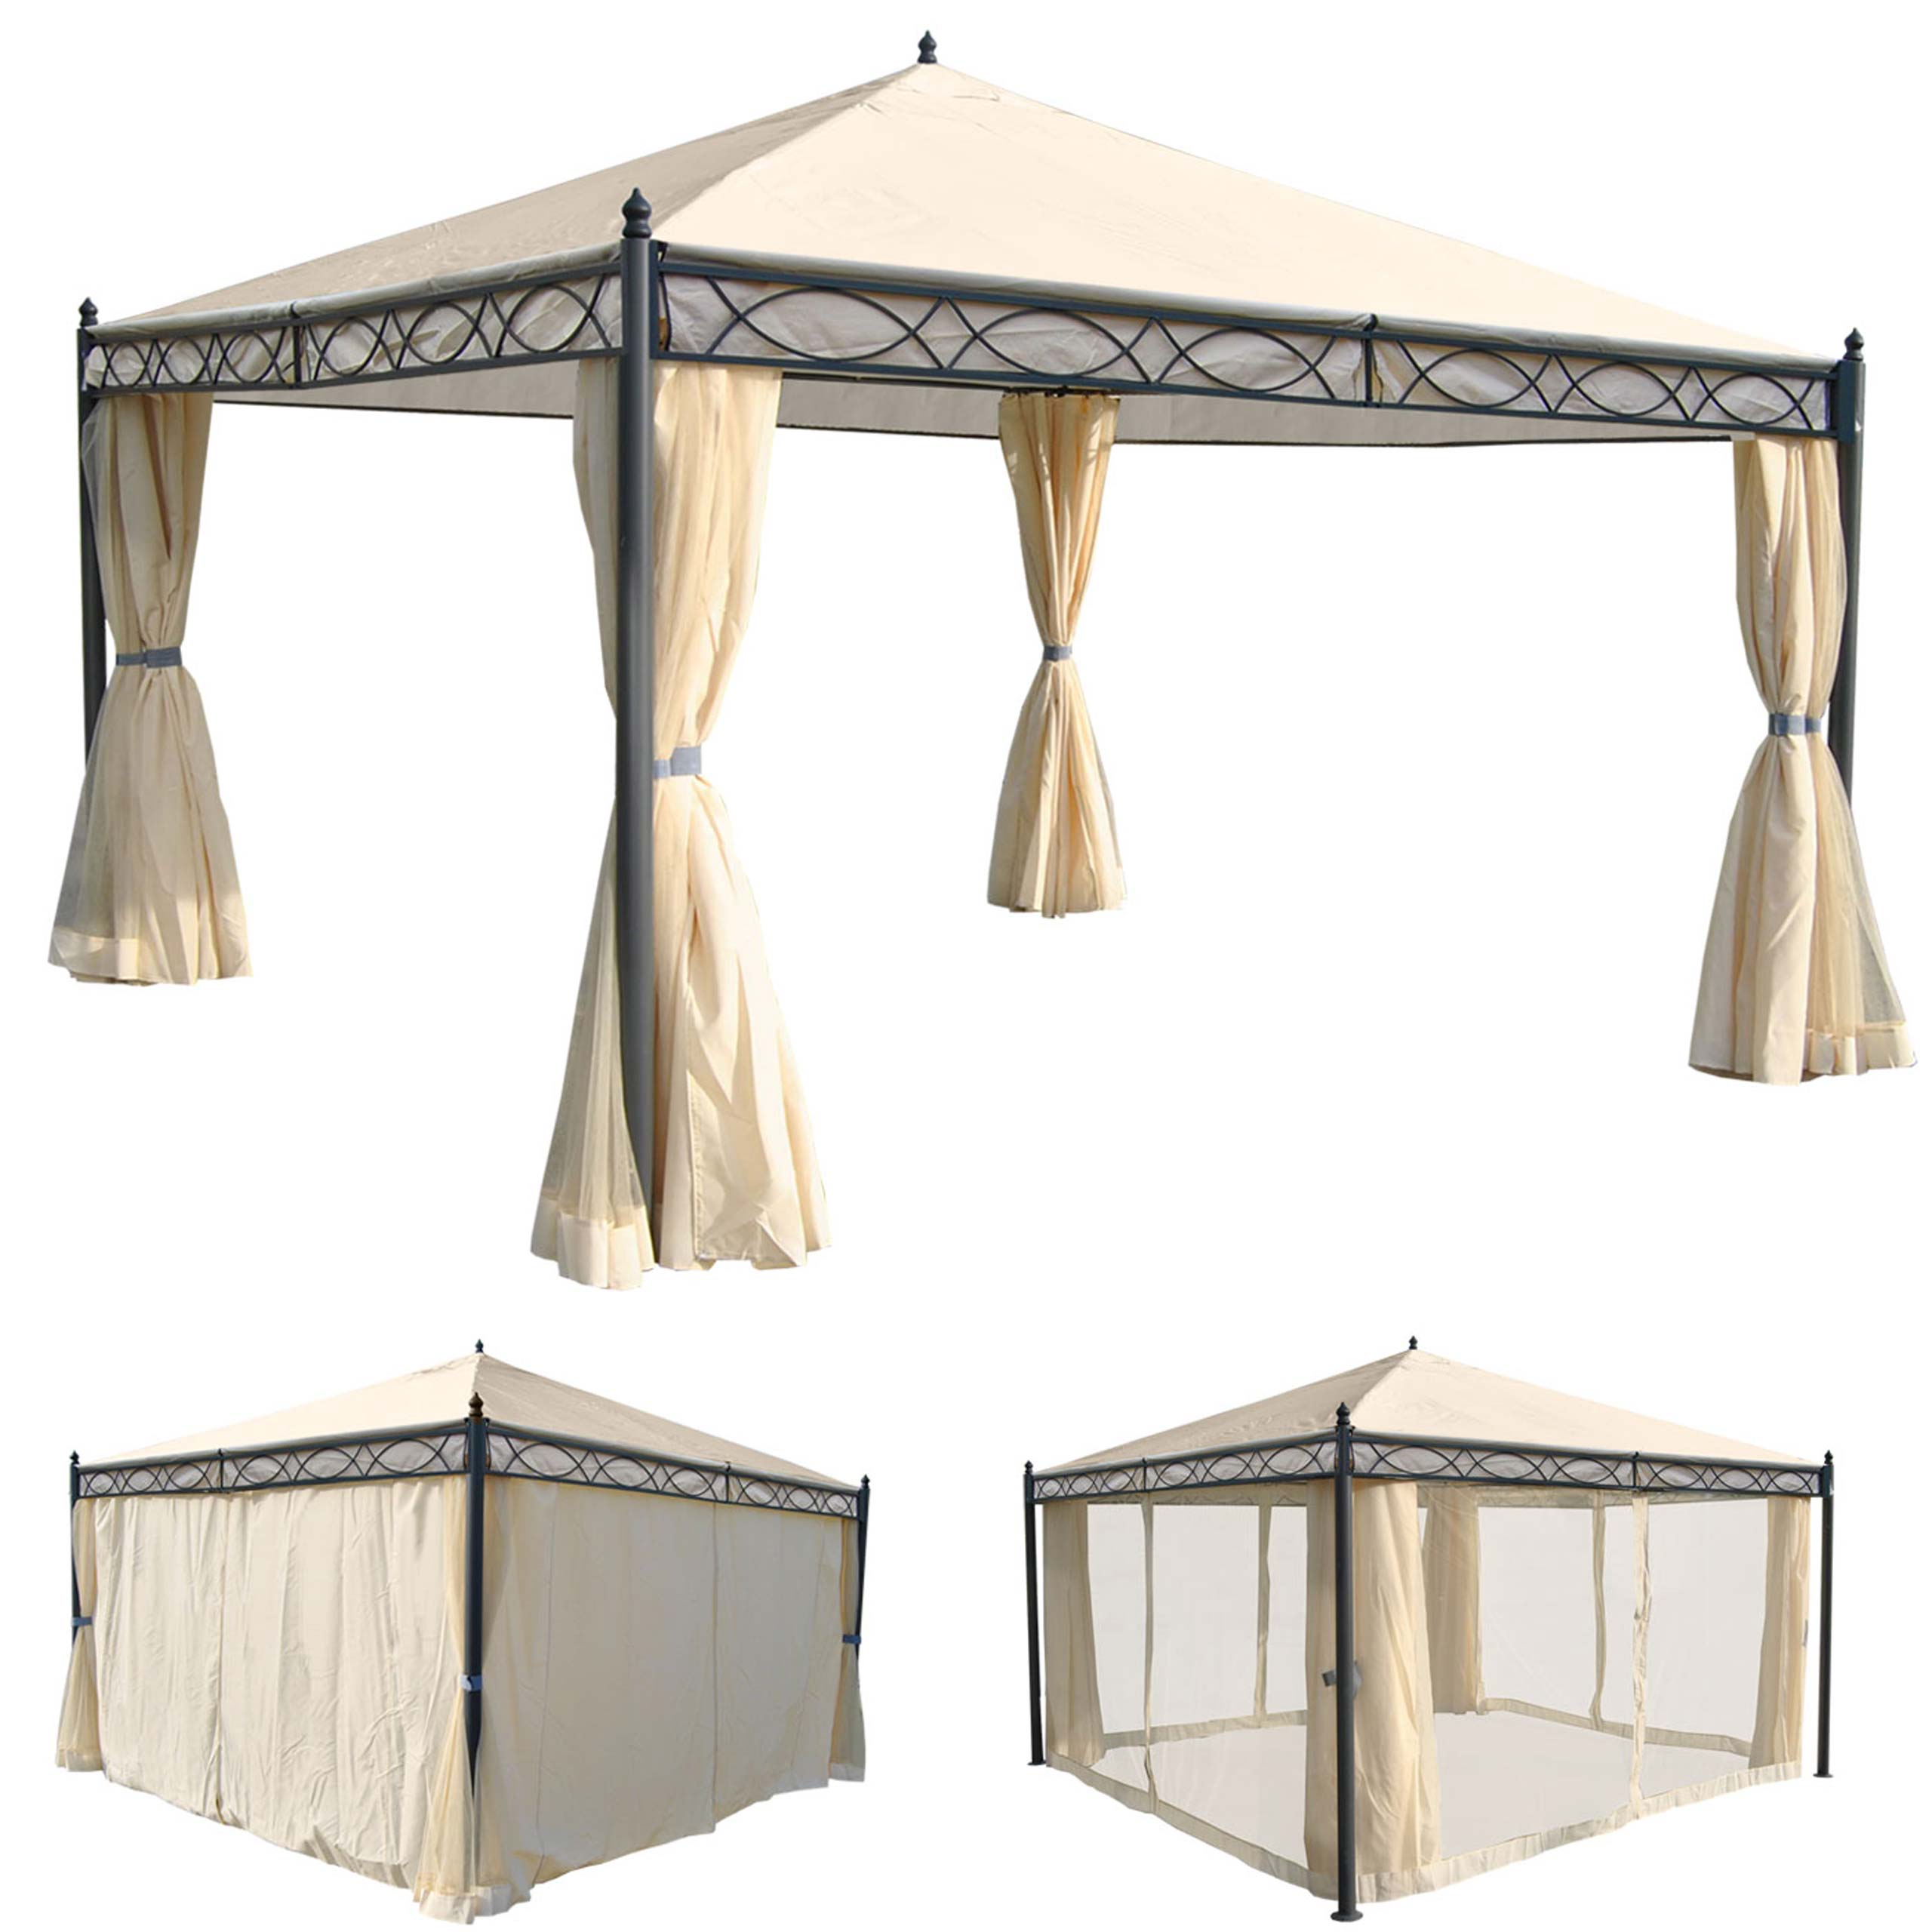 pergola calpe garten pavillon 7cm gestell mit seitenwand moskitonetz 4x4m ebay. Black Bedroom Furniture Sets. Home Design Ideas